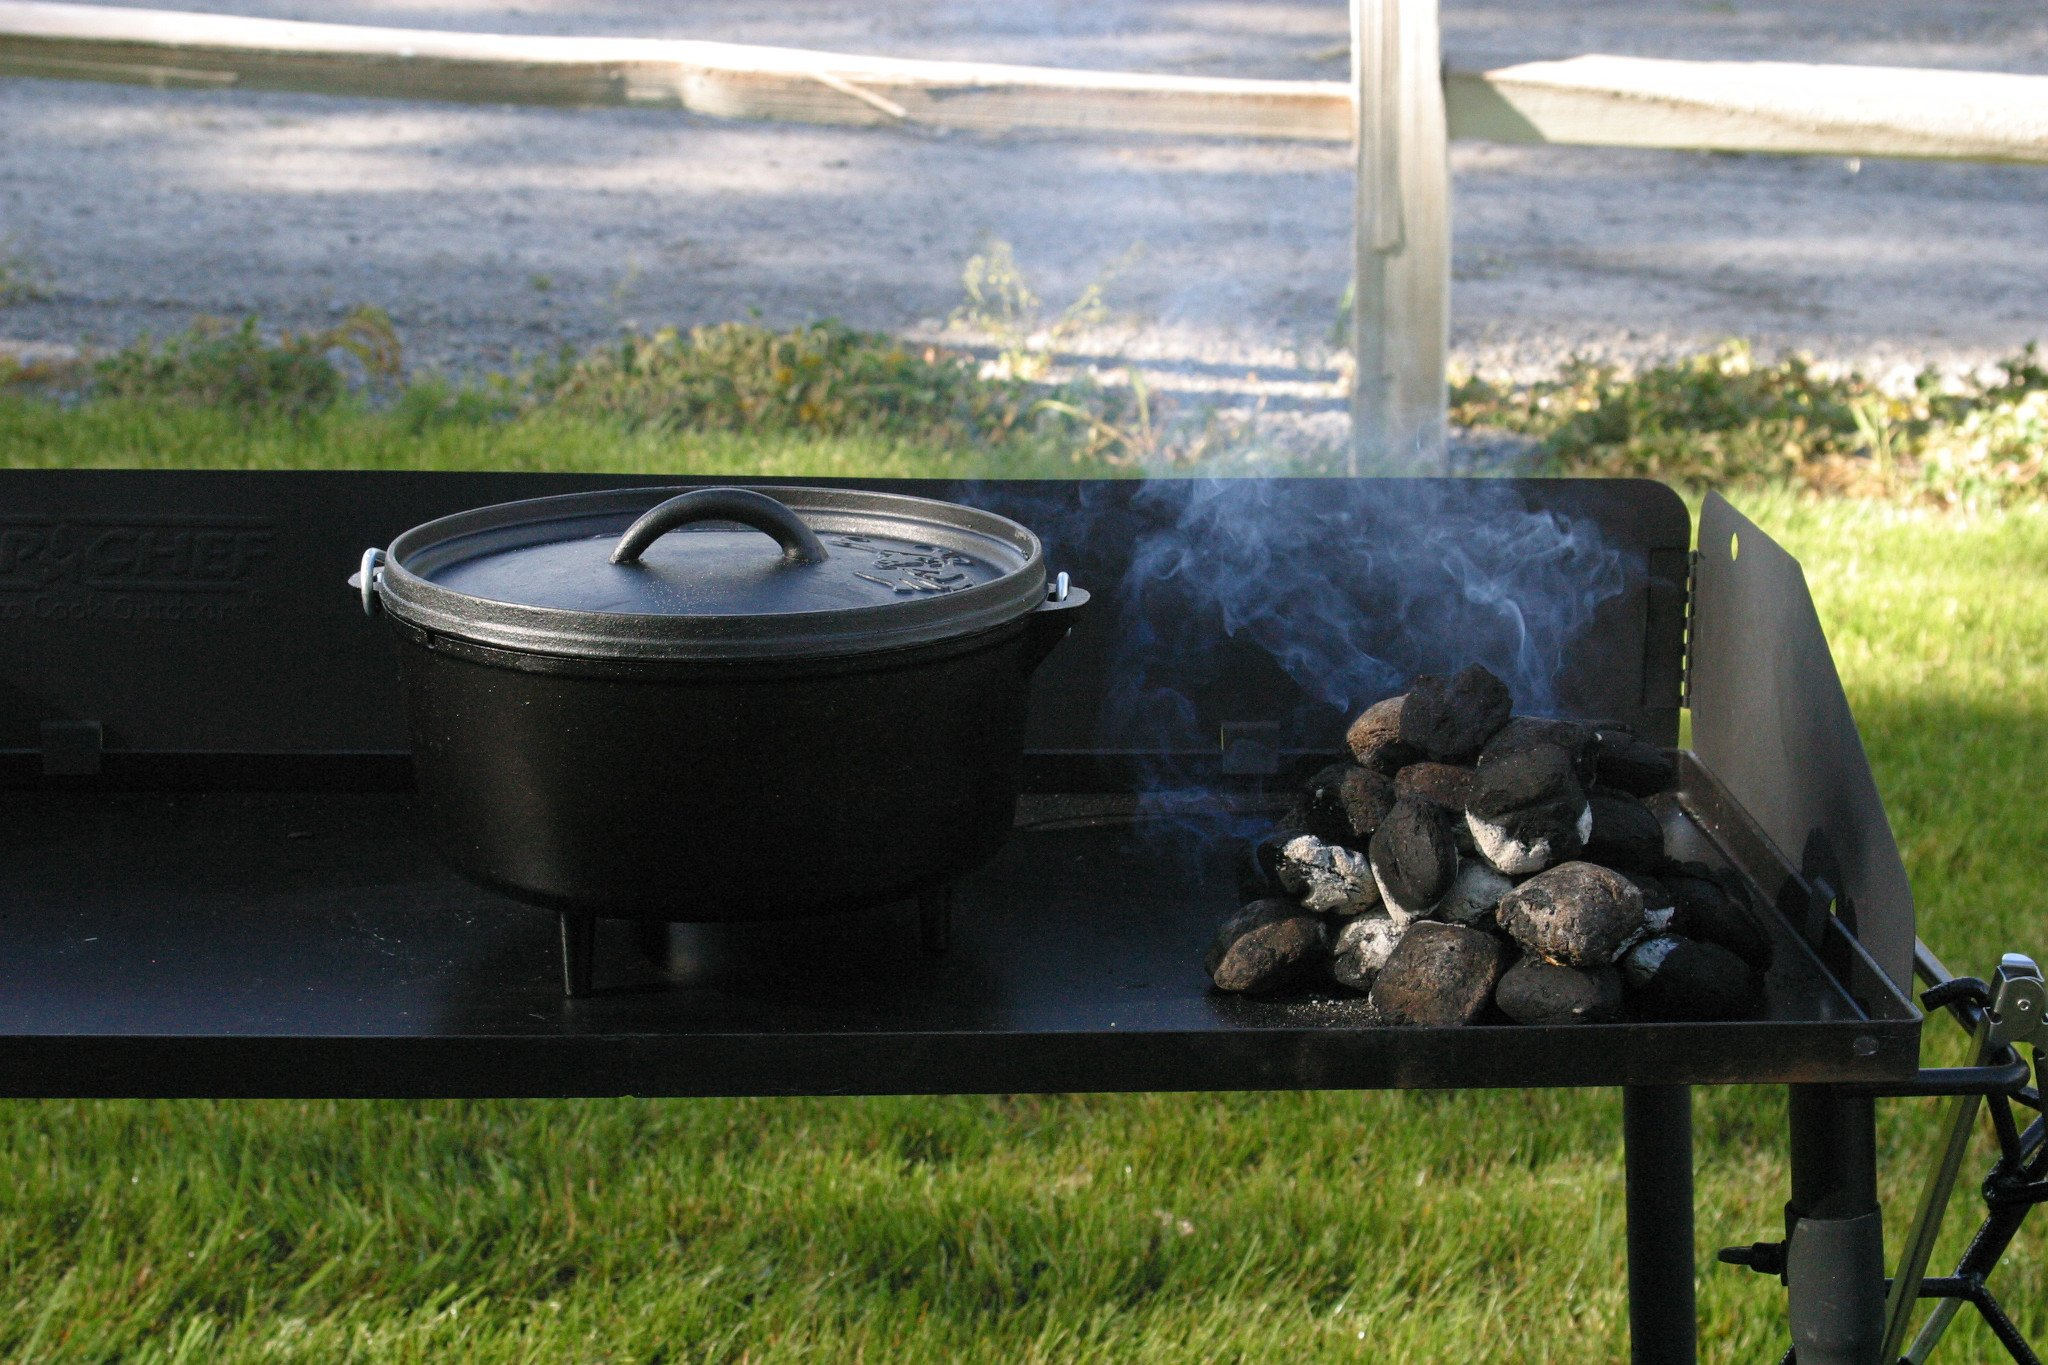 Camp Chef DO10-6 Quart Dutch Oven Pre-Seasoned Cast Iron with Lift Tool and Lid by Camp Chef (Image #3)